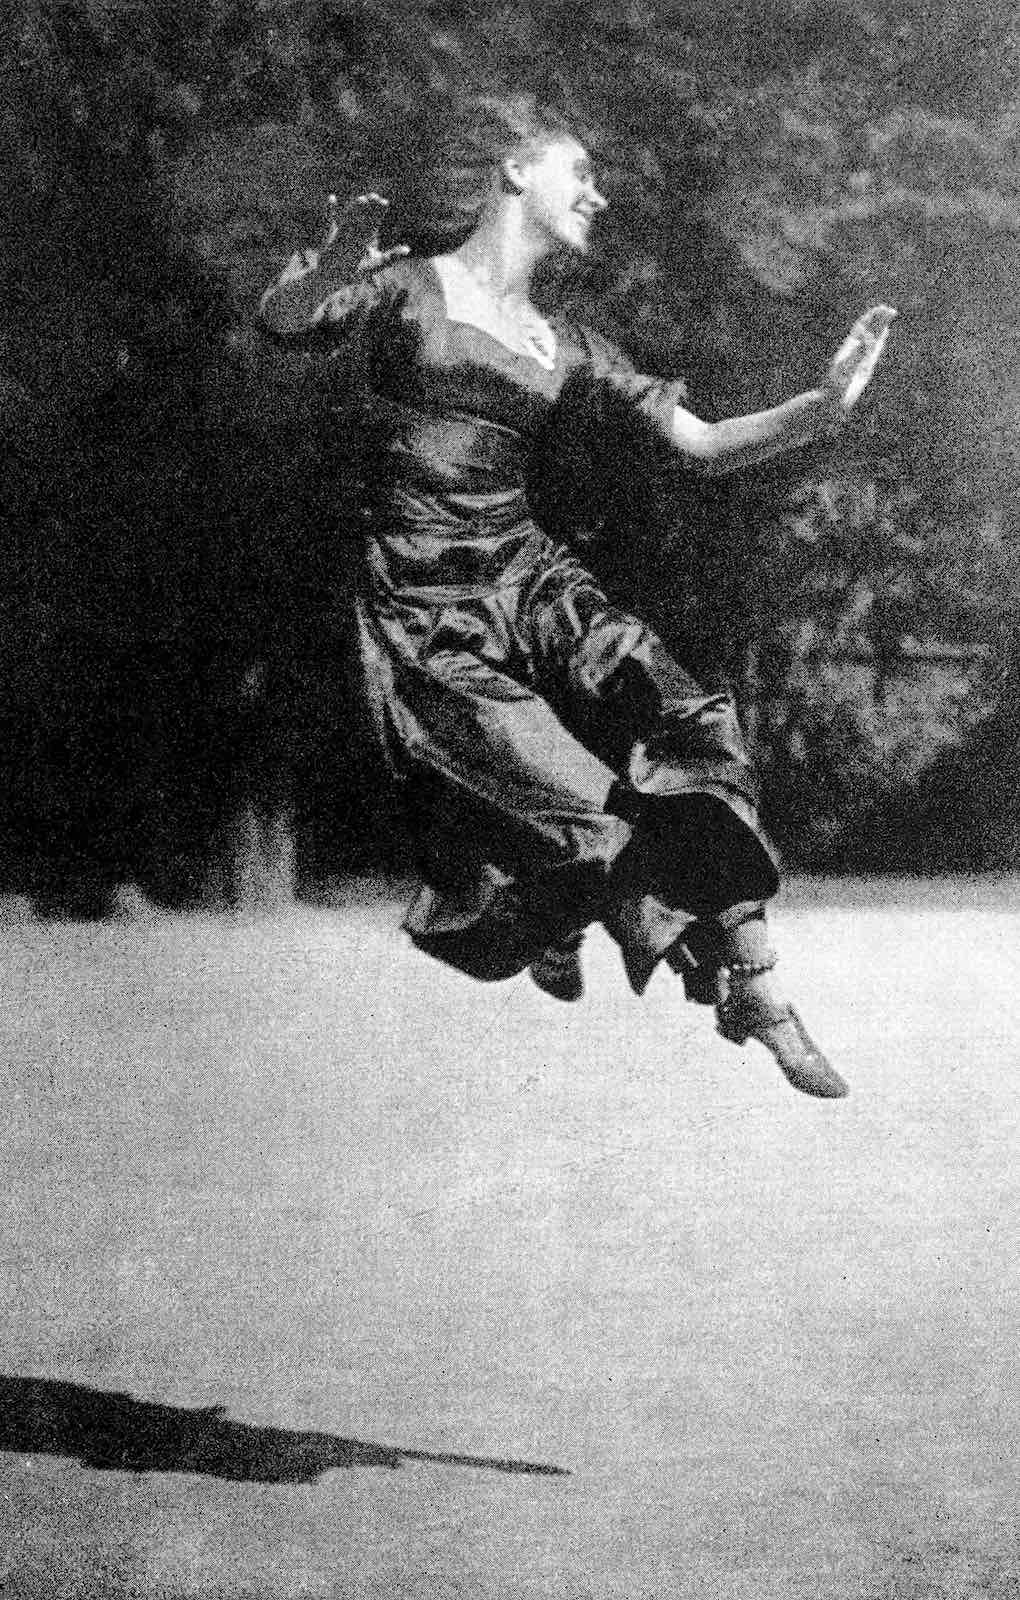 a 1923 dance artist leaping in a photograph